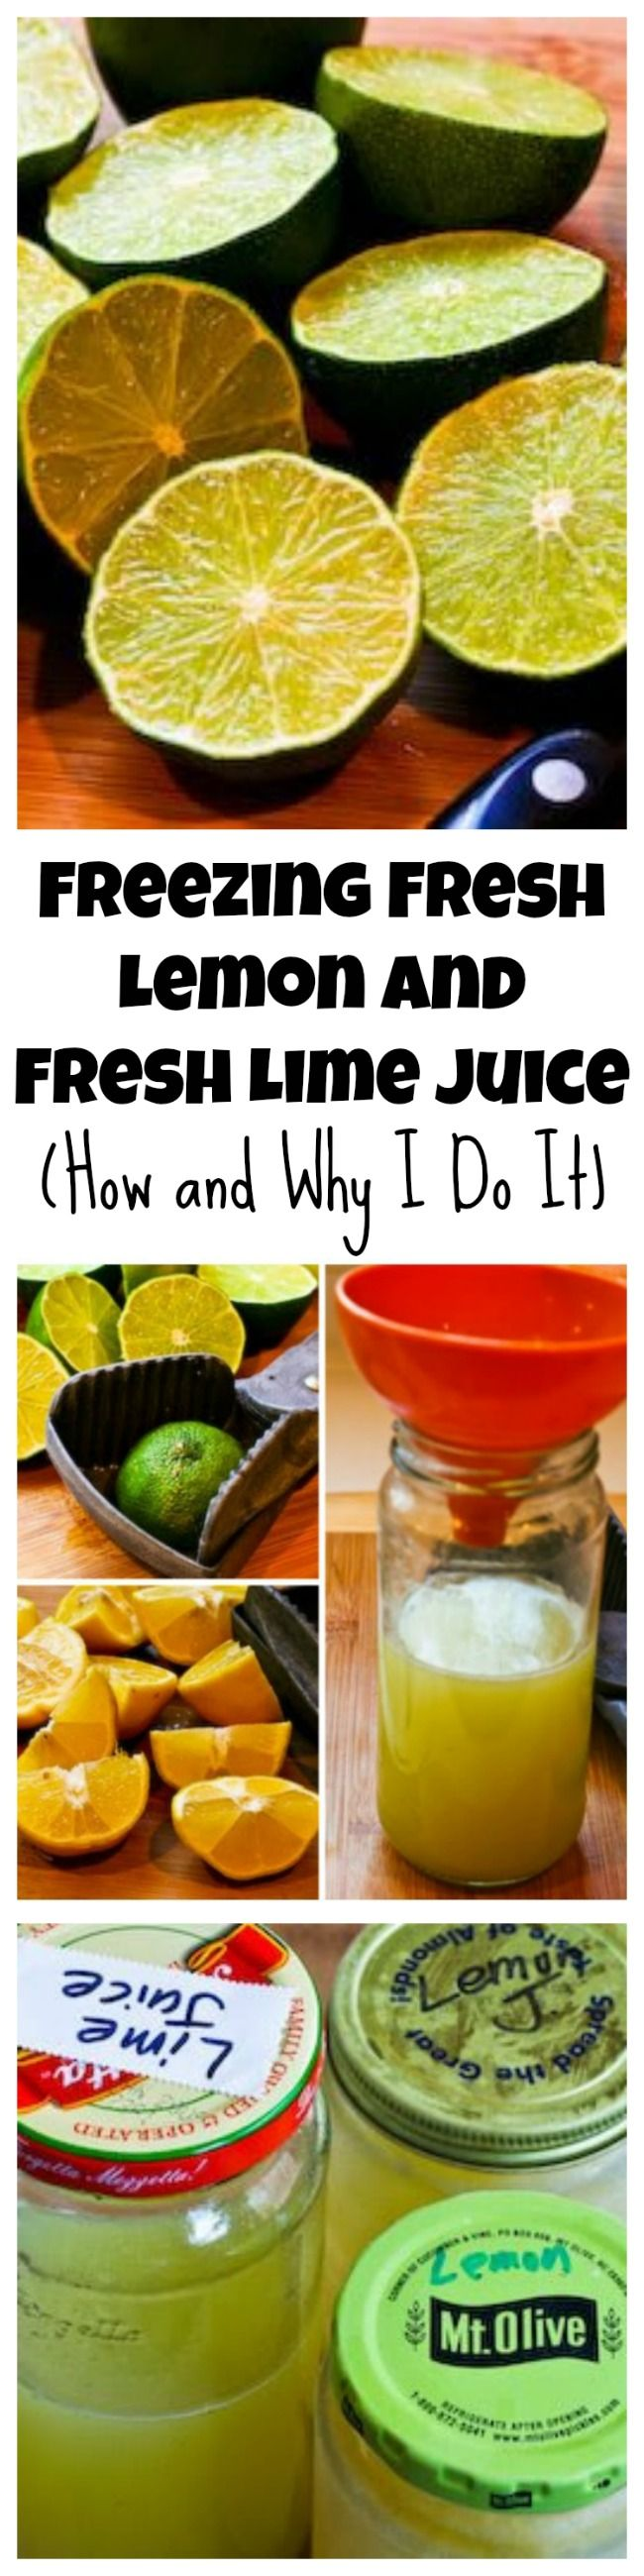 Freezing Fresh Lemon Juice and Fresh Lime Juice; this post tells how and why I am so religious about doing this.  [from KalynsKitchen.com]